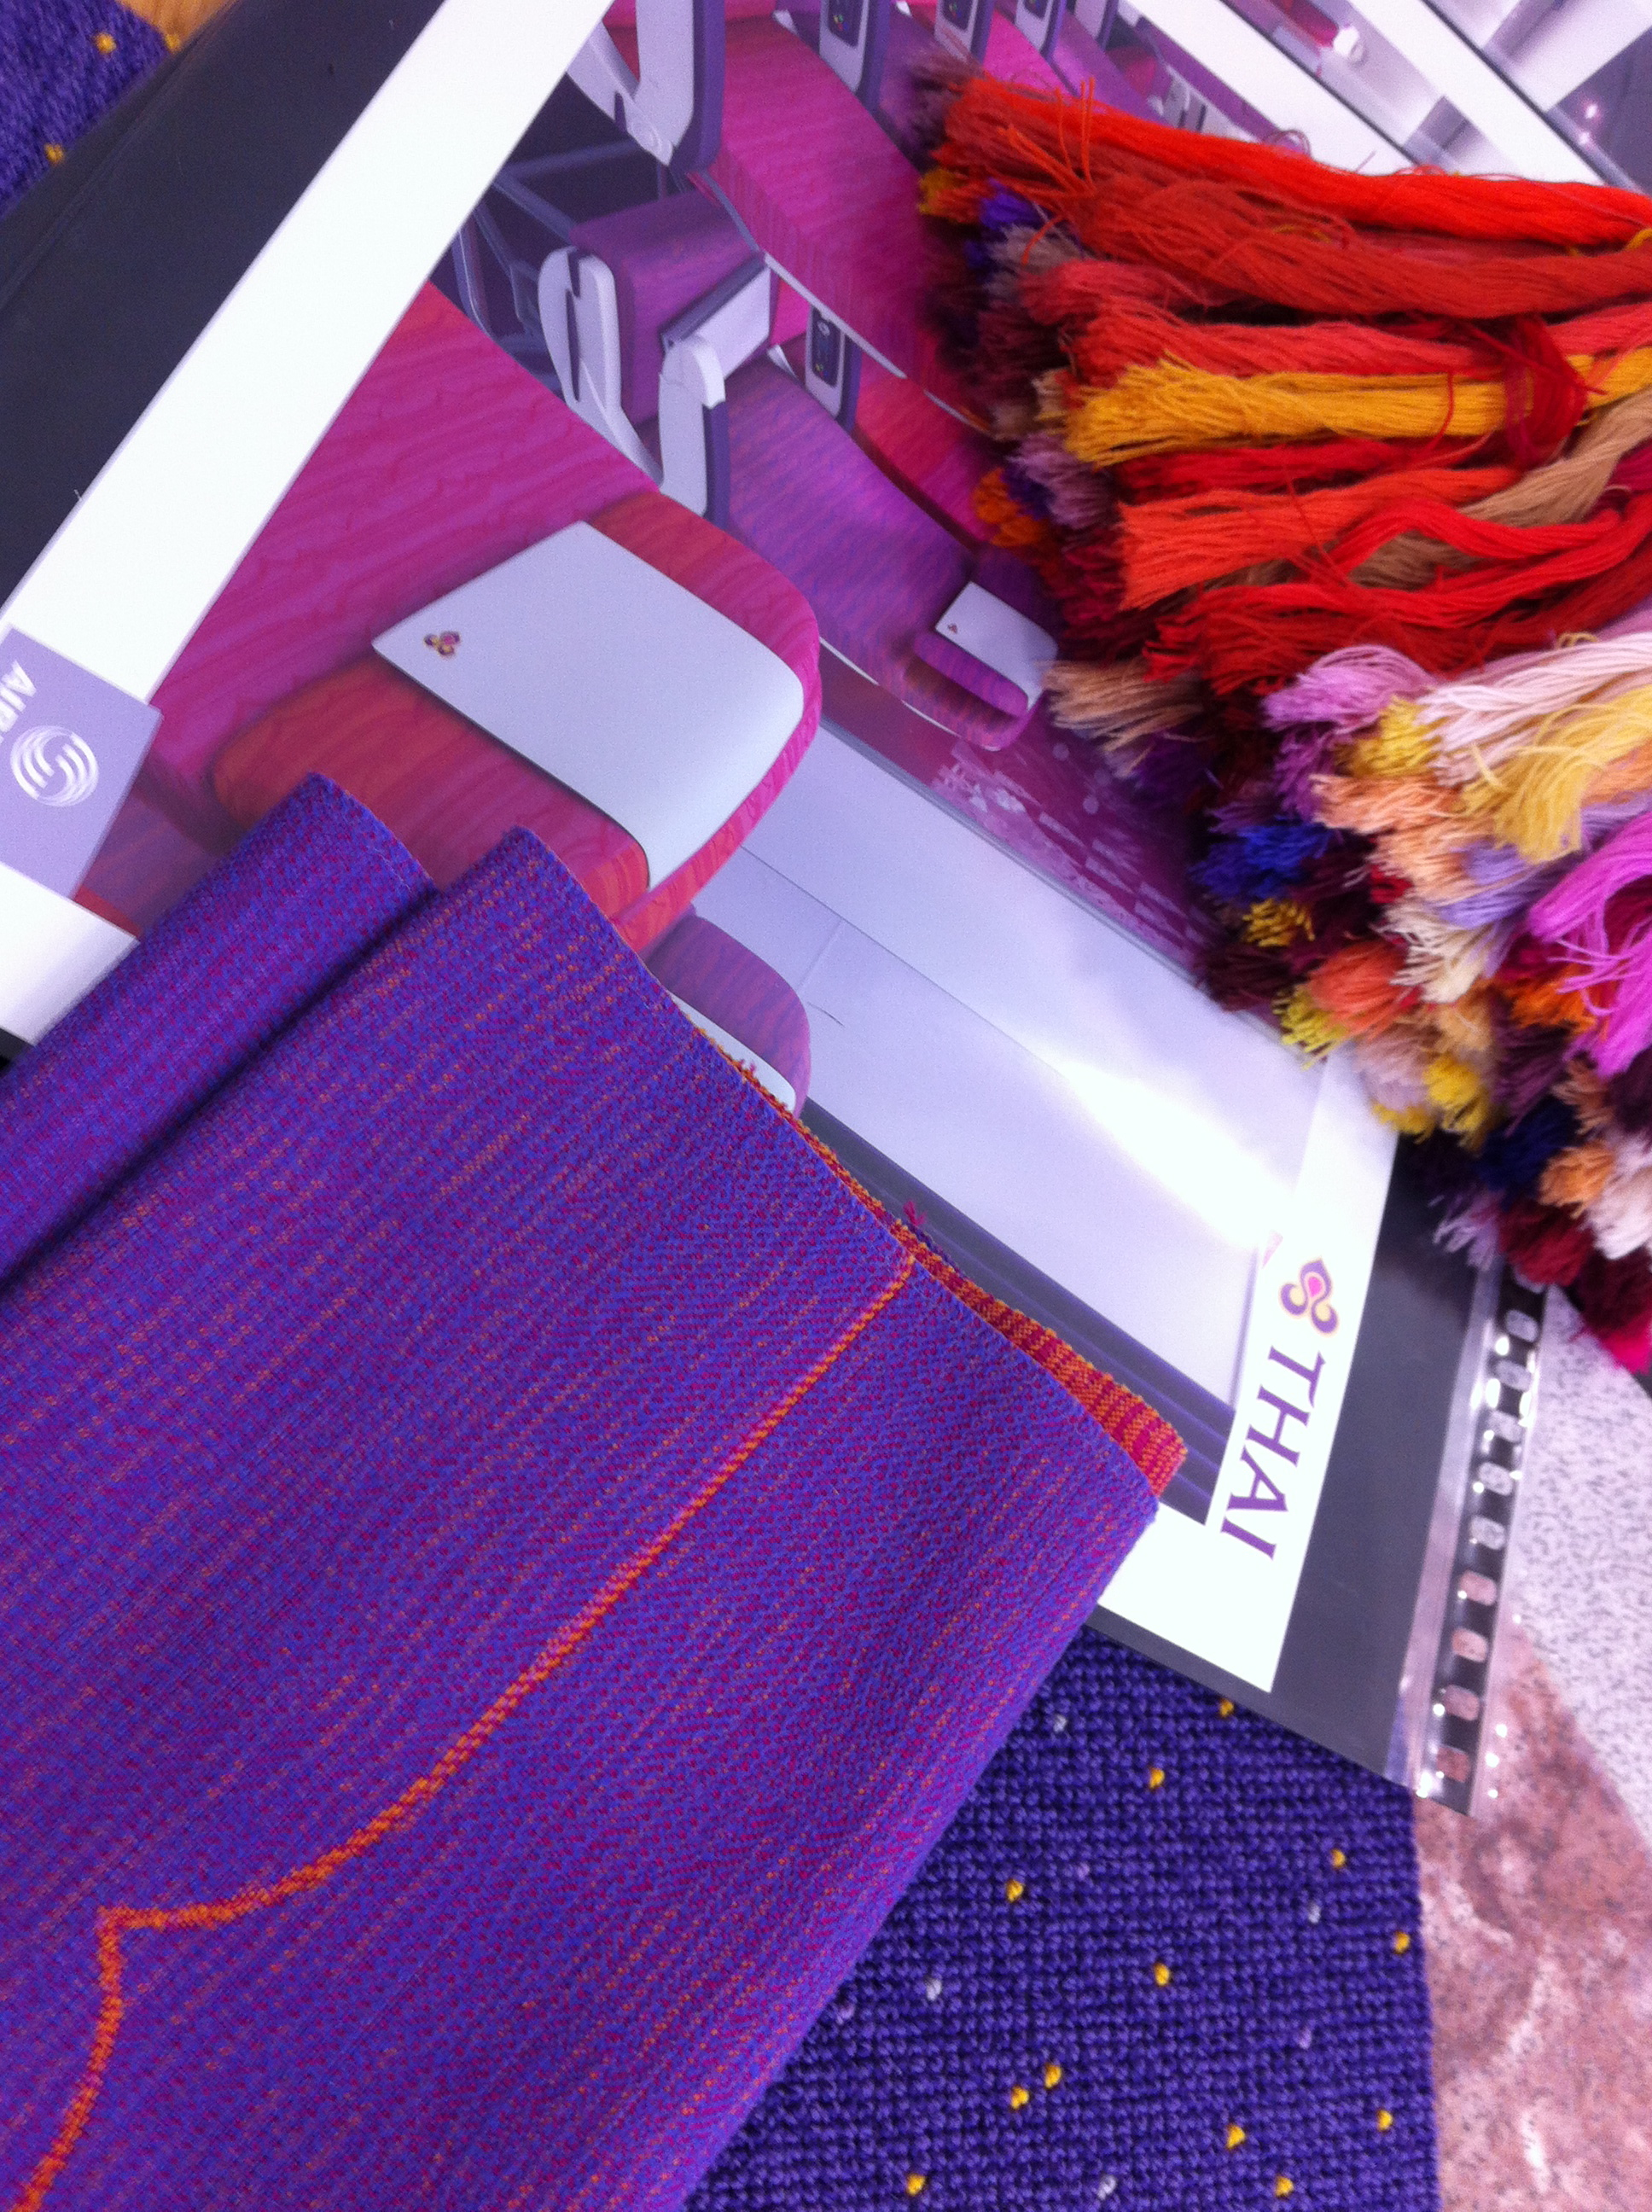 Colour schemes for Thai Airways passenger cabin